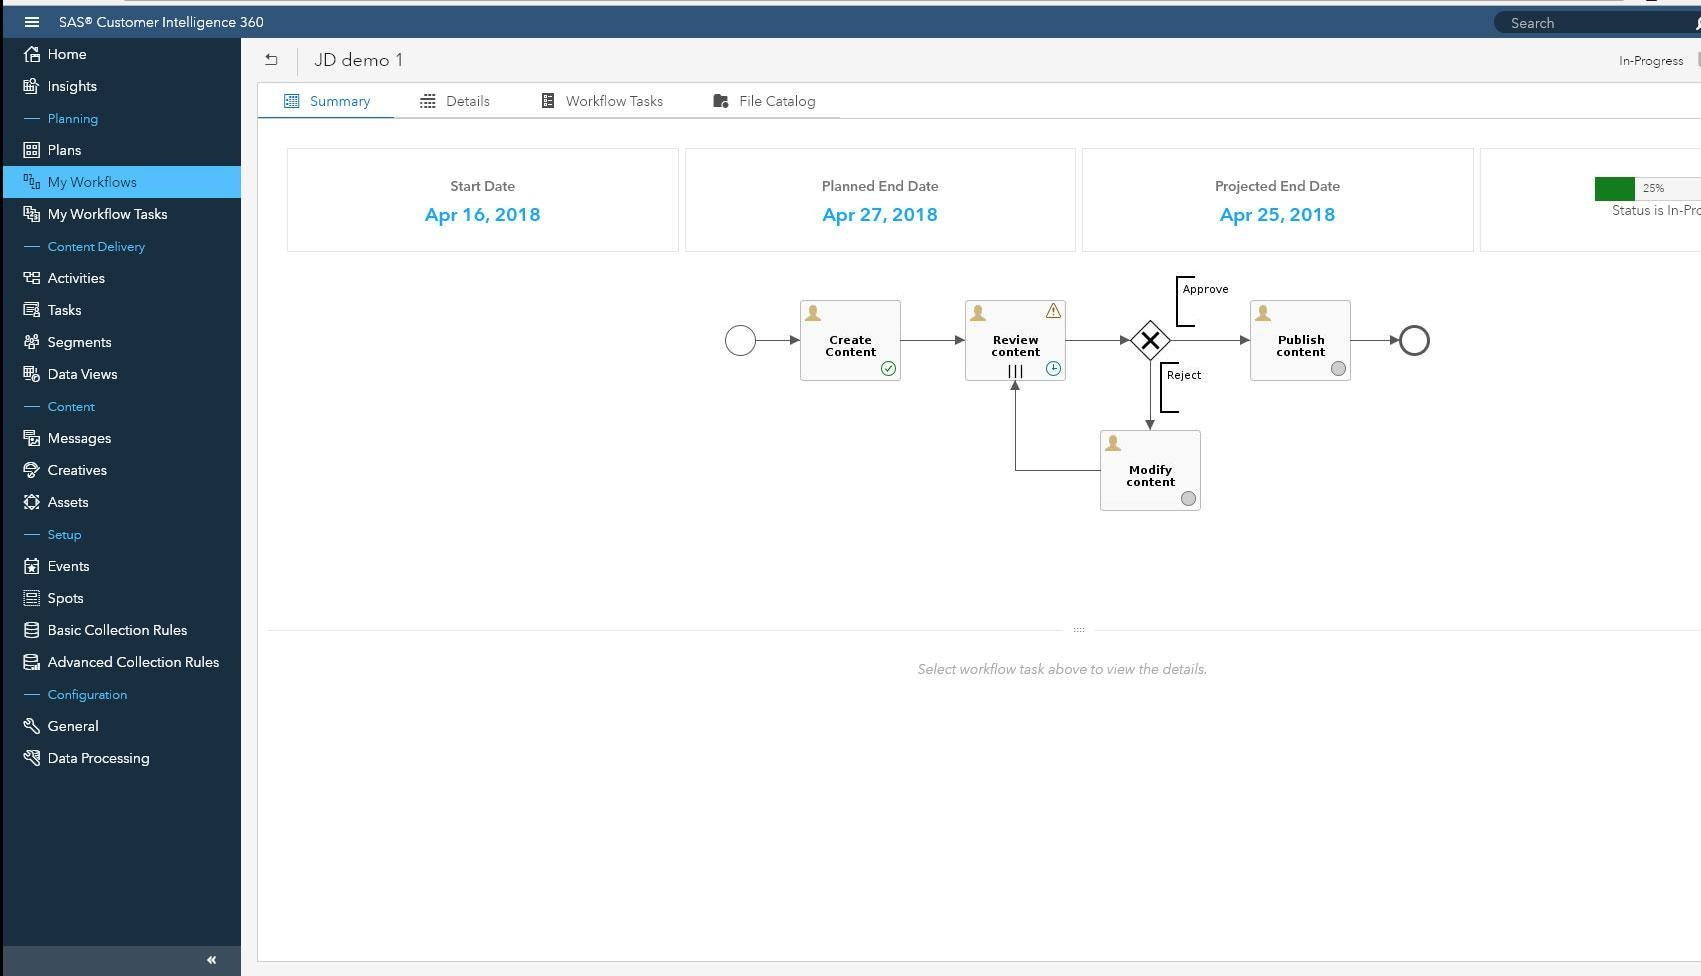 Customer Intelligence 360 Plan Workflow screenshot